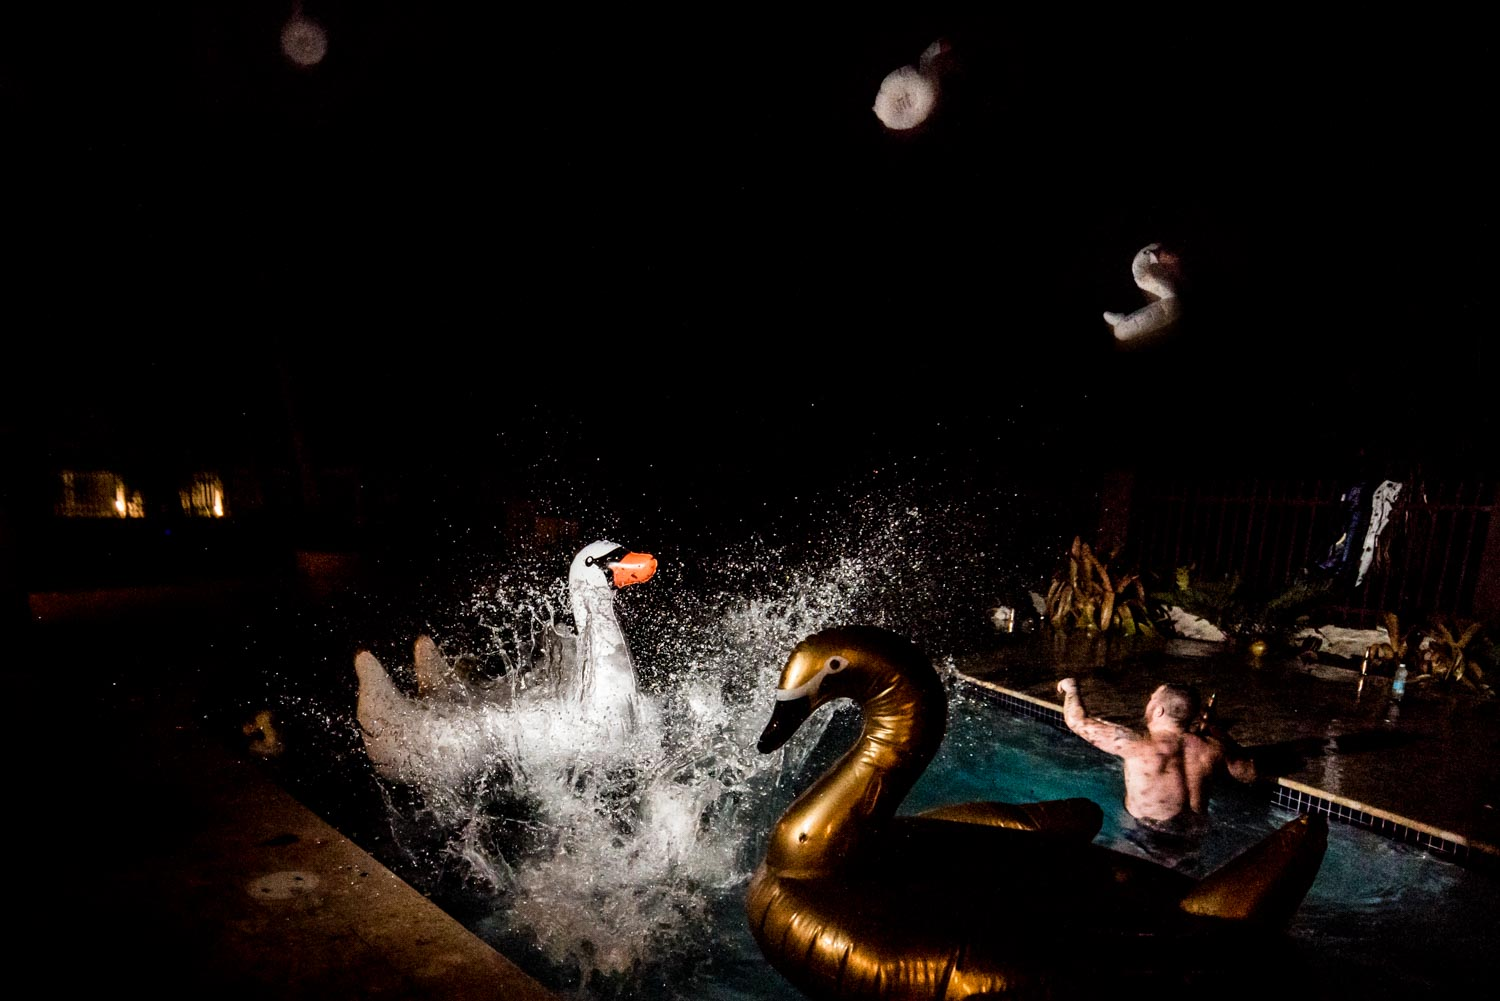 Wedding guests jumping into the outdoor swimming pool with gold and white pool floats shaped like swans.